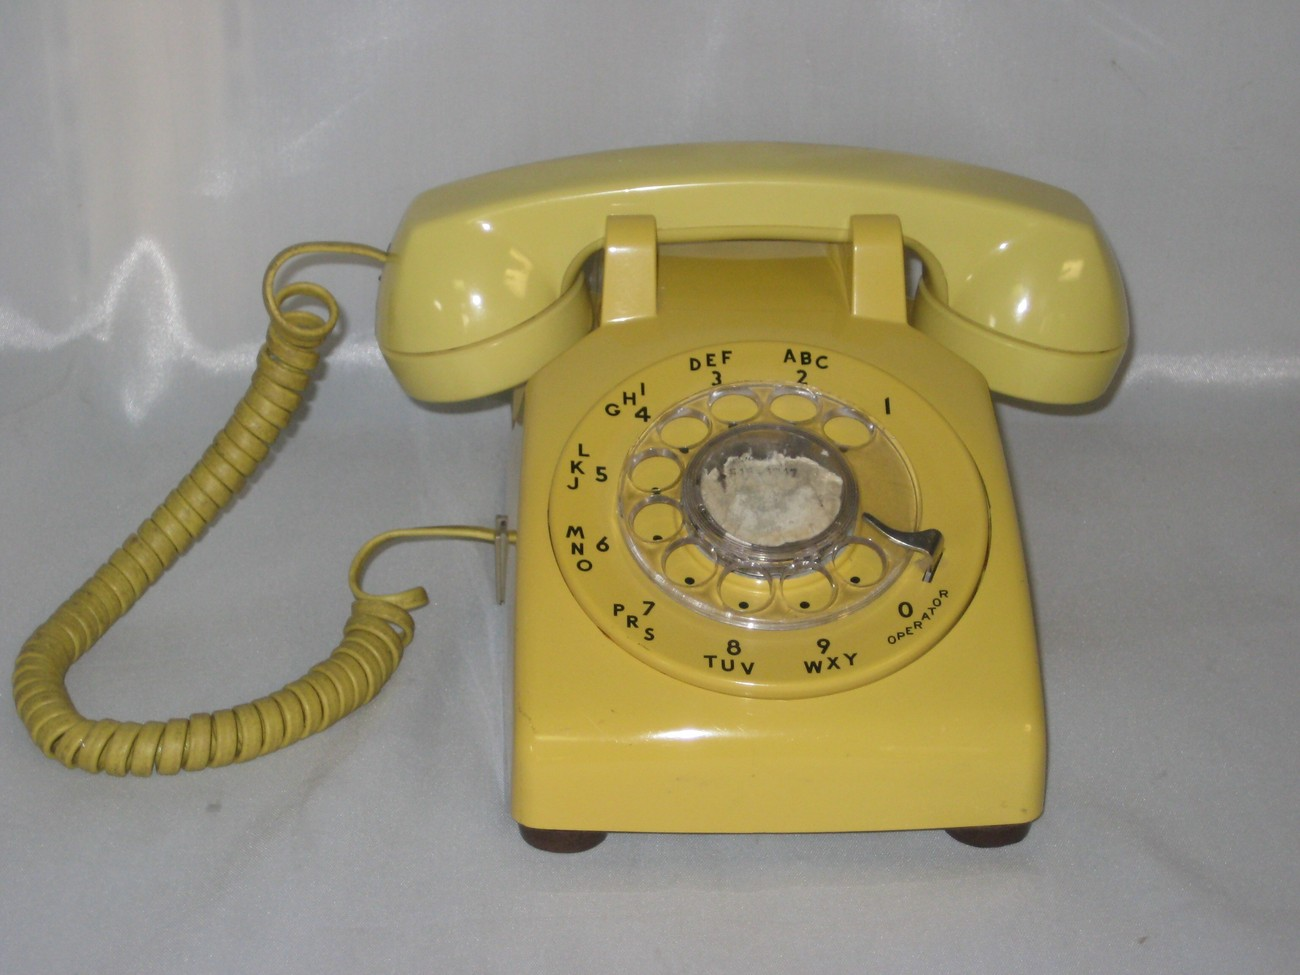 Western electric rotary dial desktop harvest gold telephone